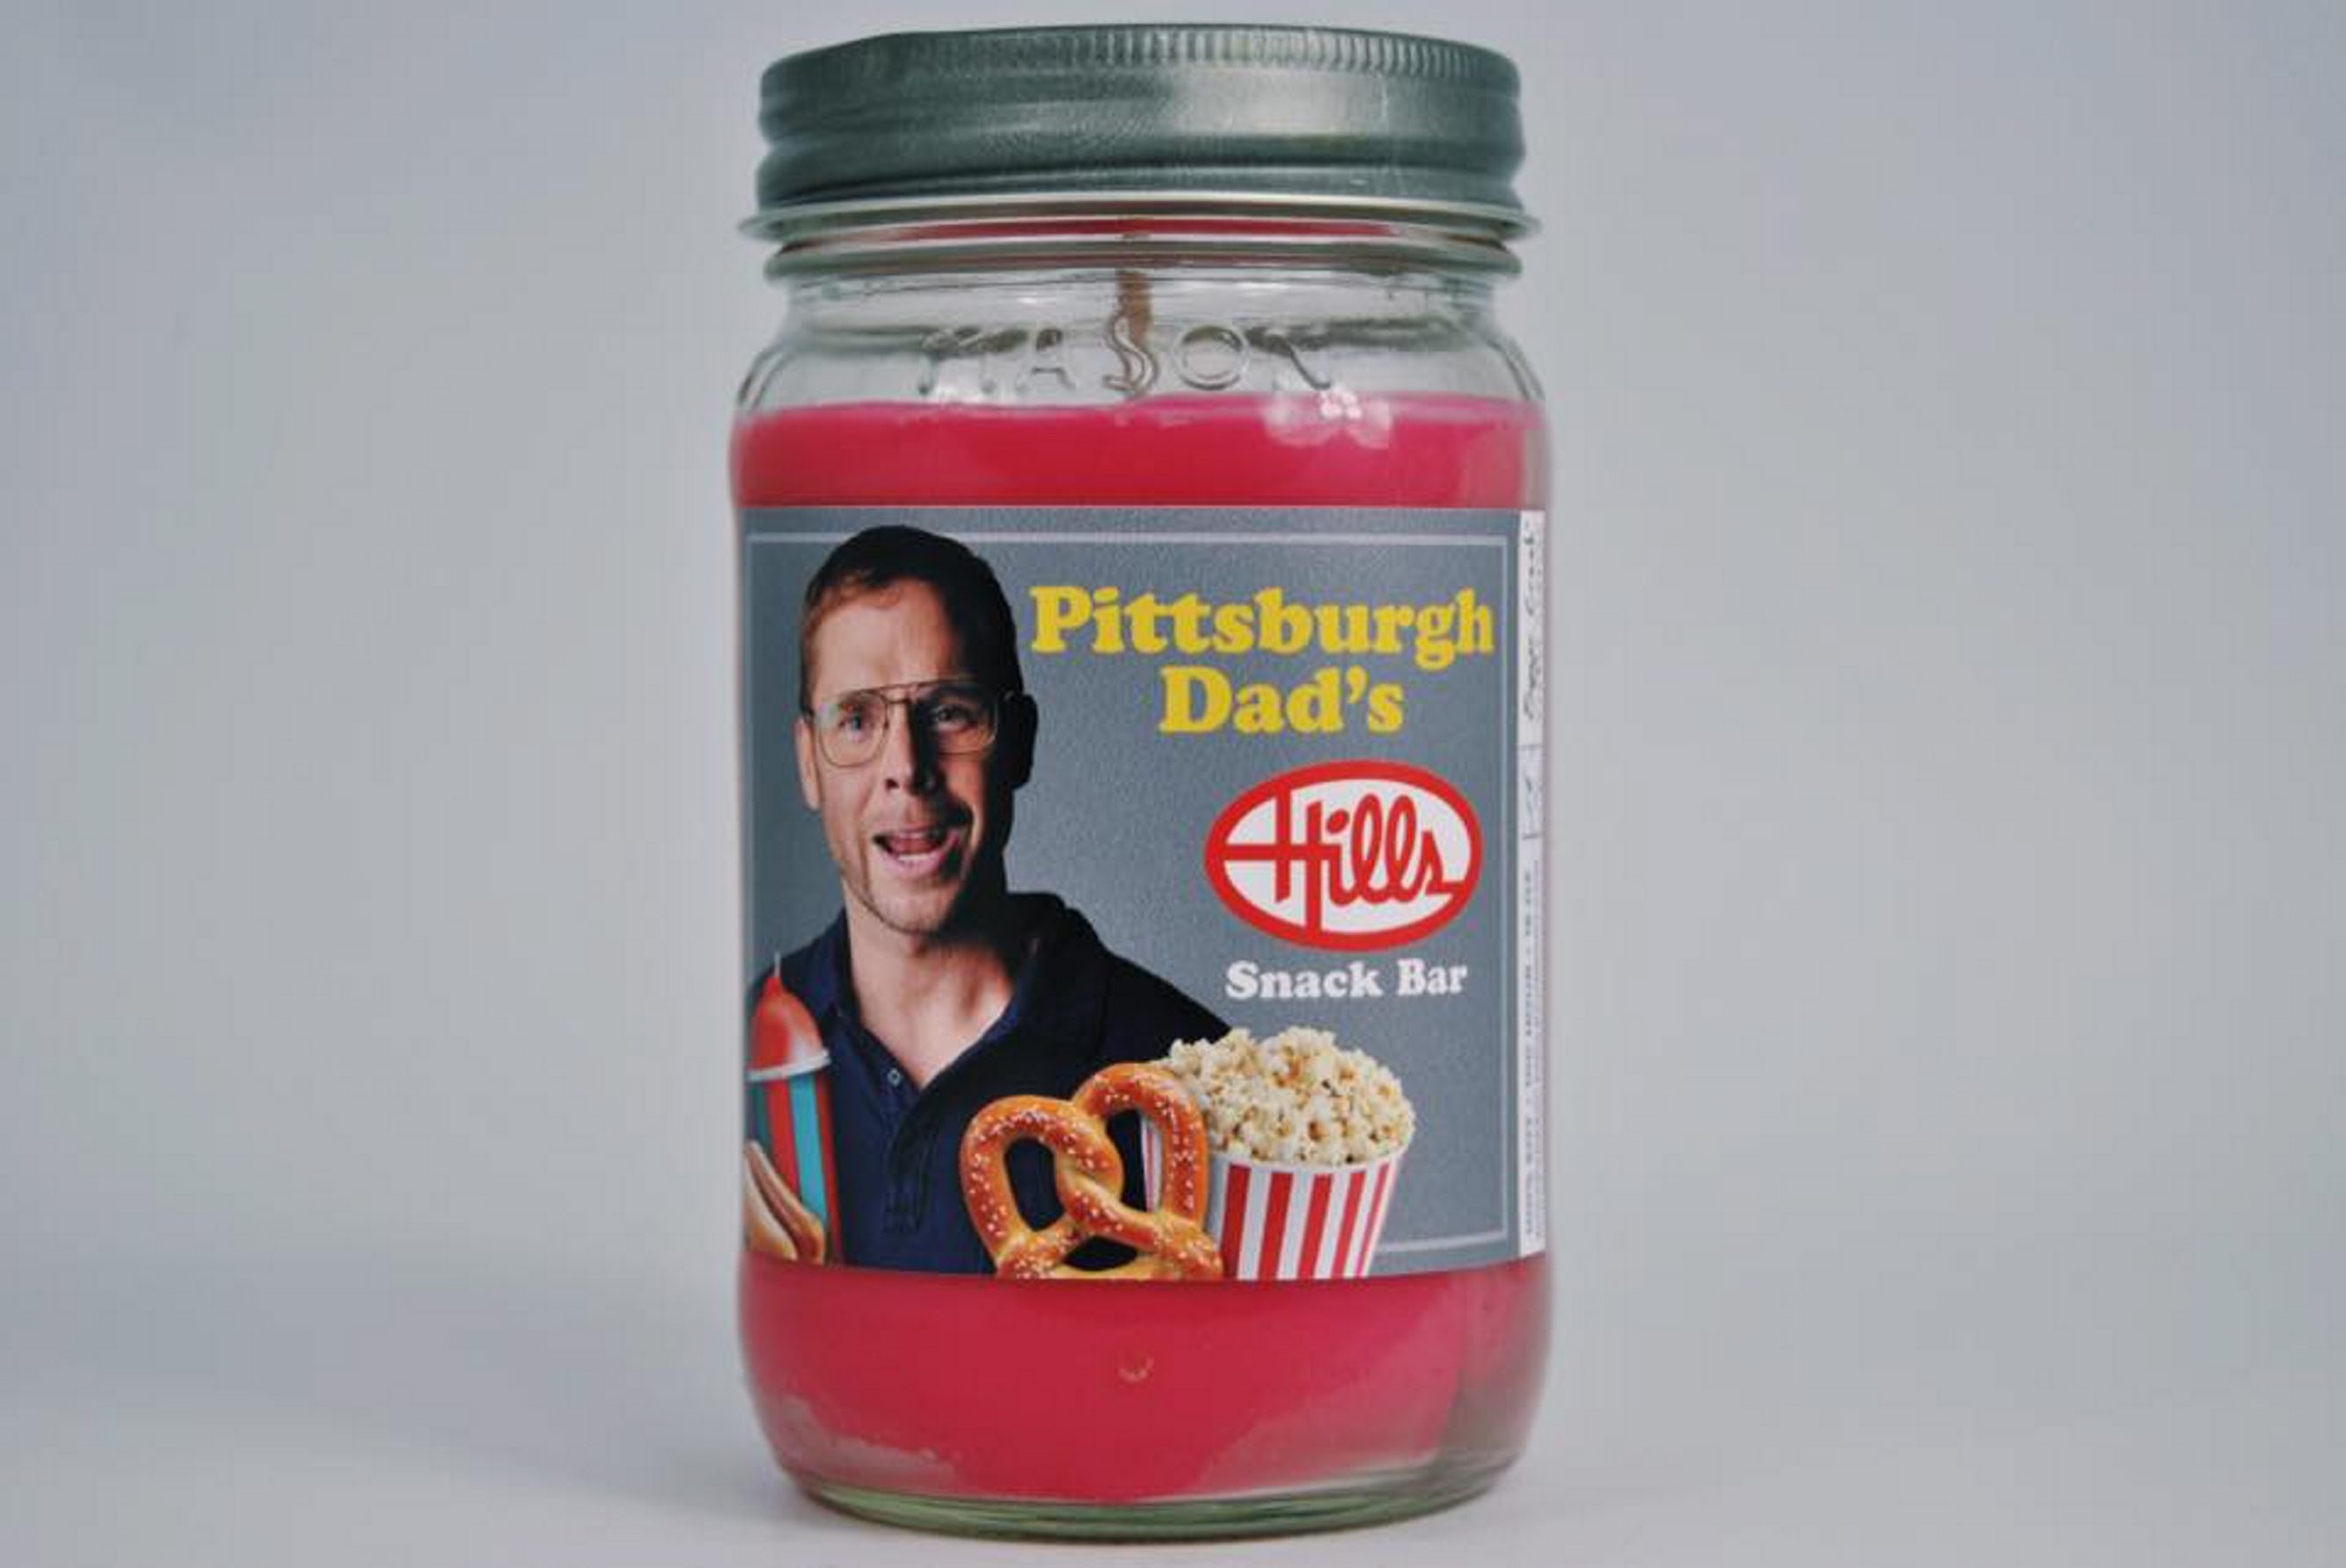 Comedian and actor Curt Wootton is featured on Pittsburgh Dad's Hills Snack Bar Candle.